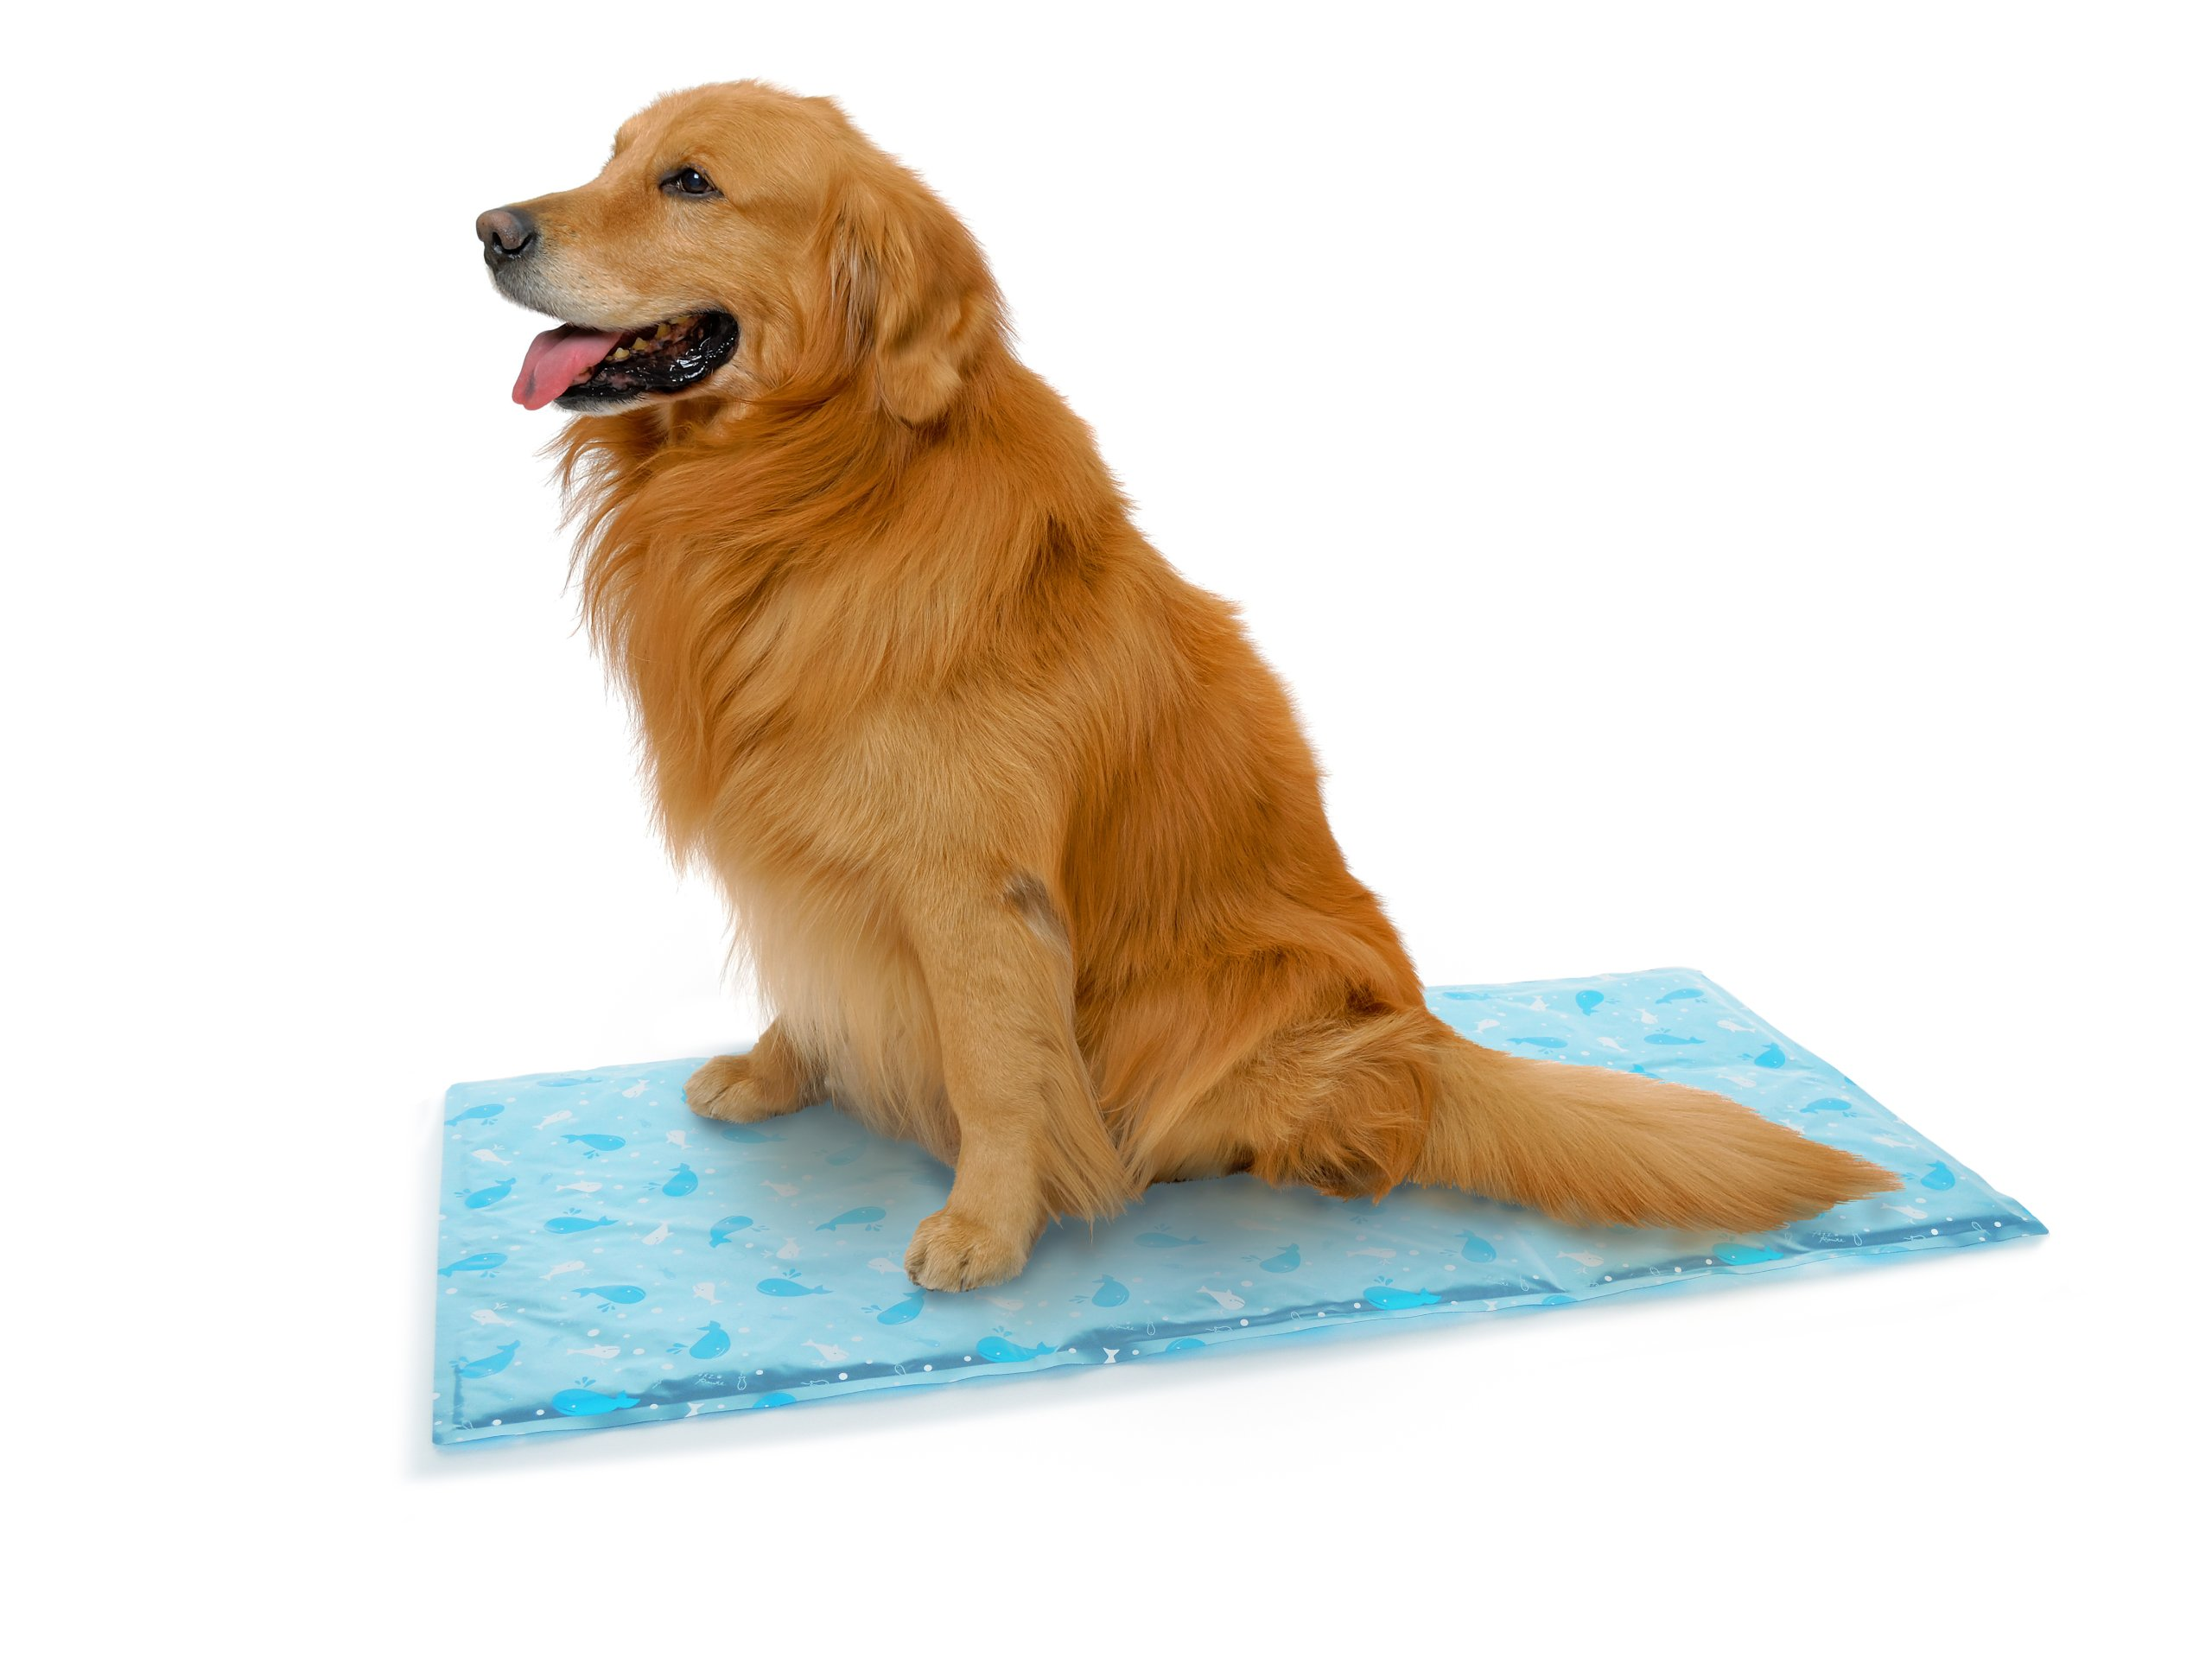 Pez route (Petz Route) Hie Hie antibacterial gel mat Blue L for cats and dogs (japan import)